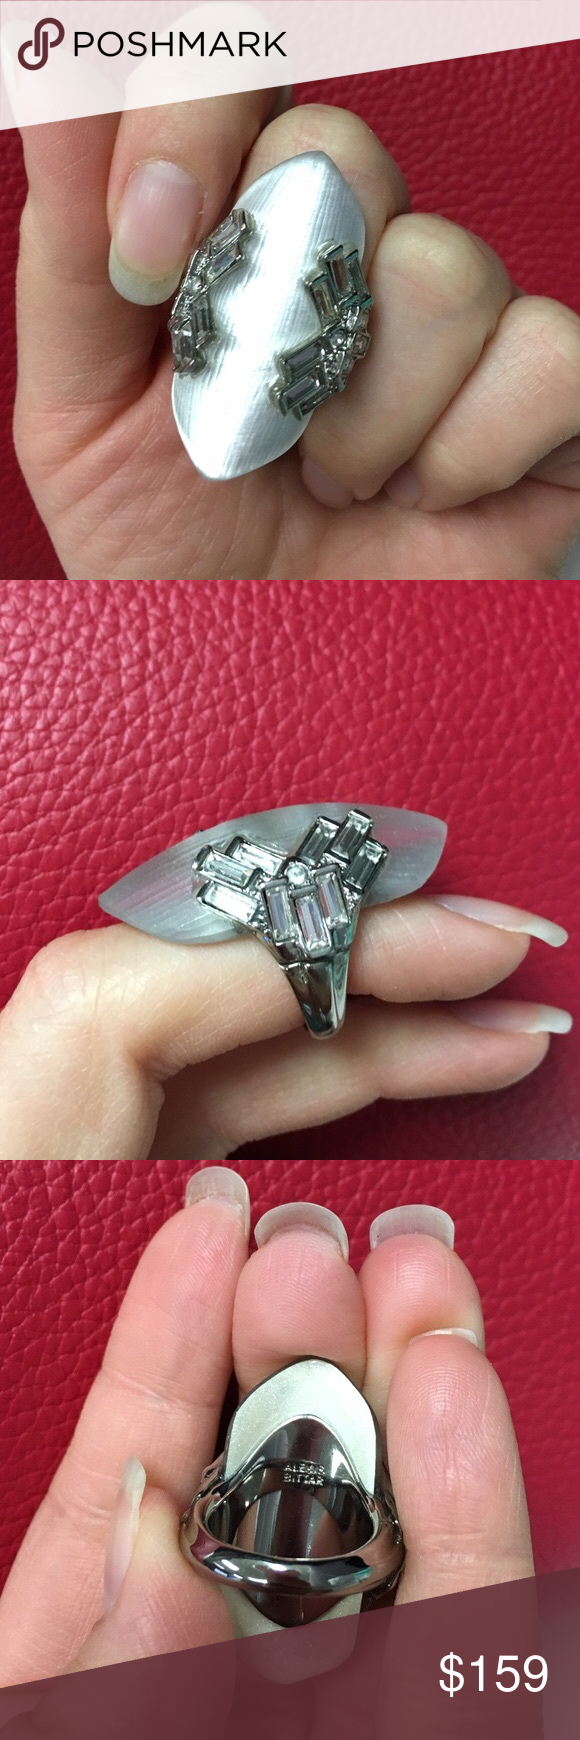 🆕NWOT Alexis Bittar Ring This ring would be awesome to mix and match. It's a grey almost frosted middle and baguette details on the side. Size 6, NWOT. Reasonable offers accepted with the offer button. Alexis Bittar Jewelry